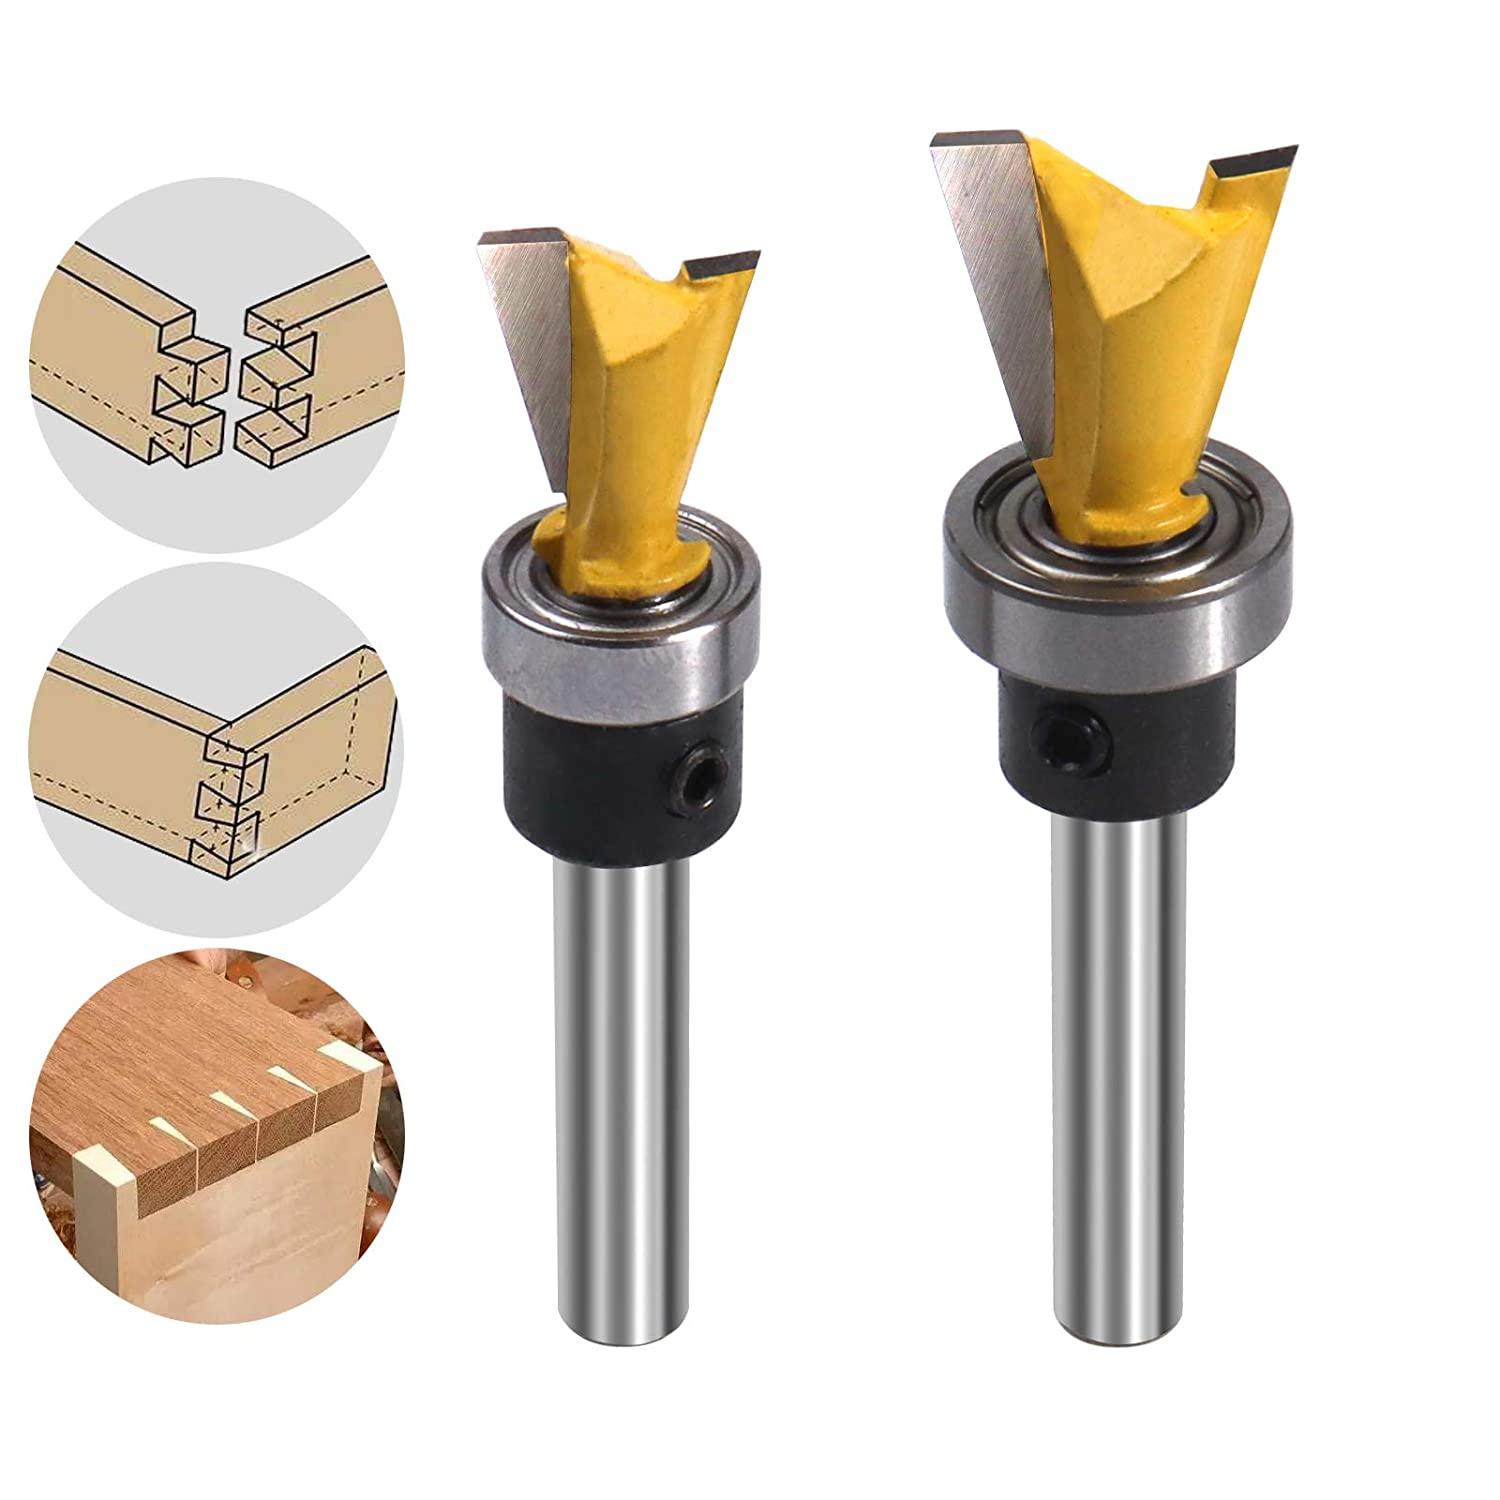 Dovetail Router Bit 1 4 Inch Diamet 8 Cutting 2 5 Discount mail Baltimore Mall order Shank